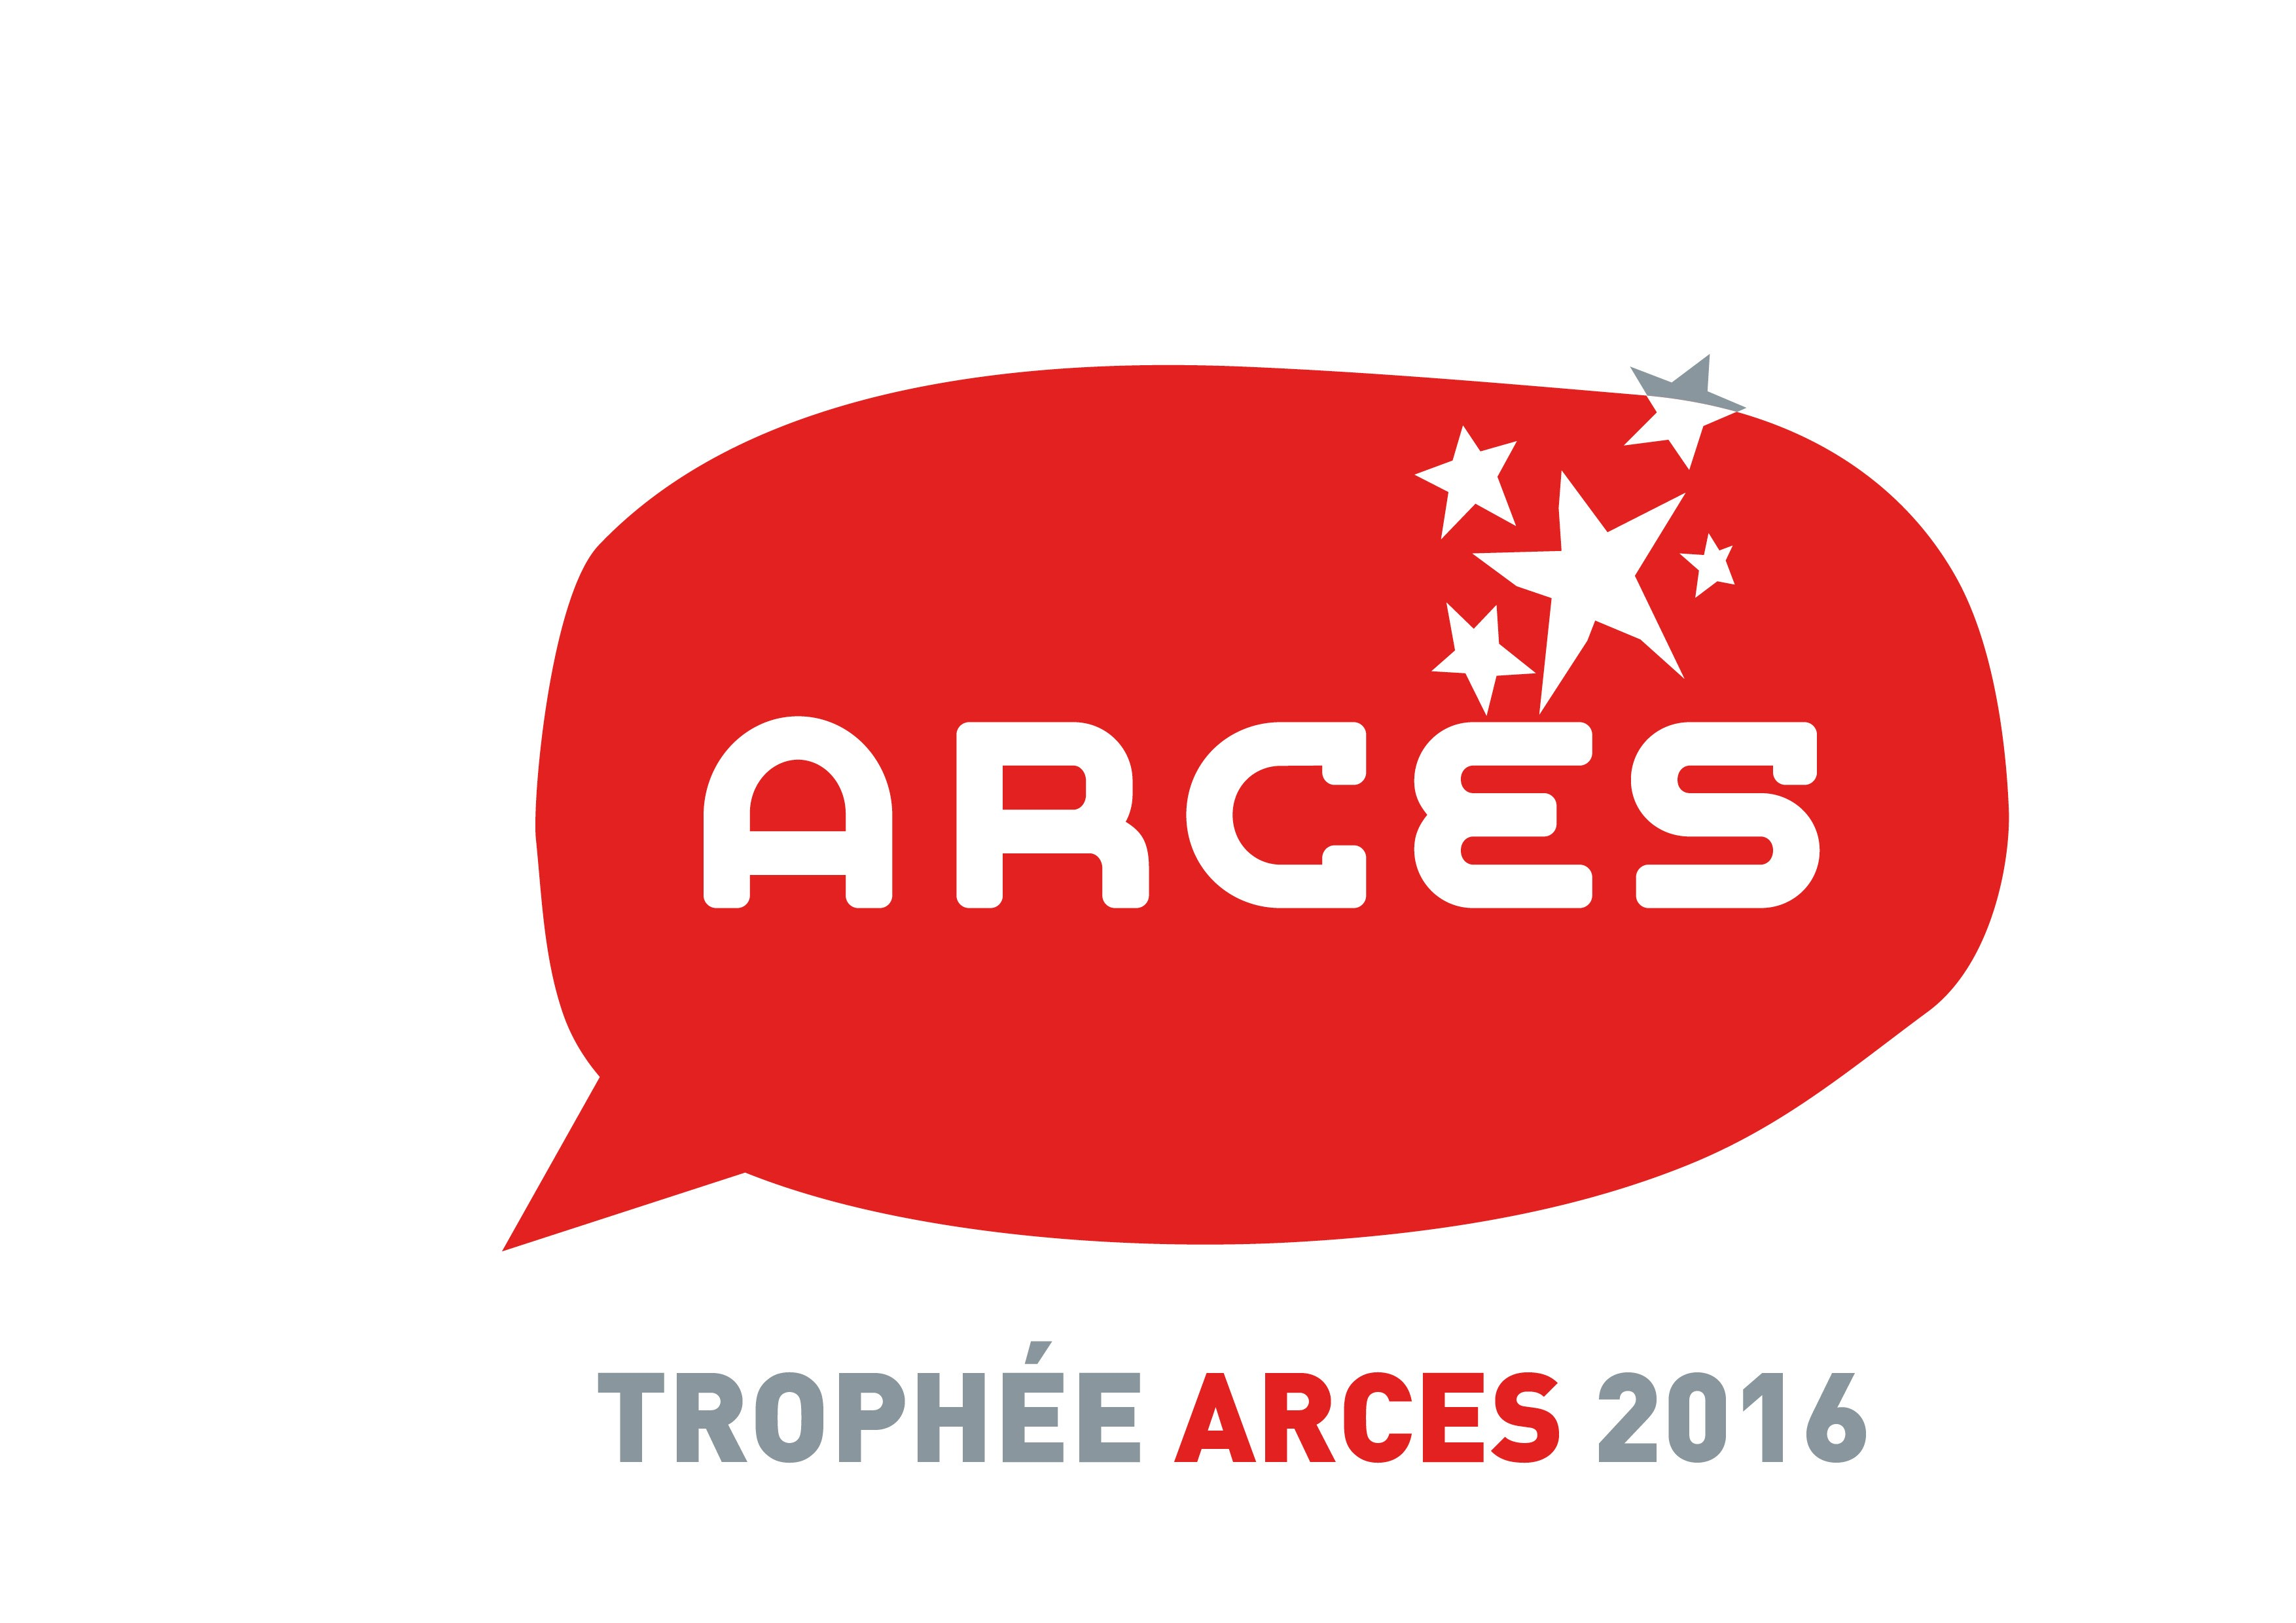 ARCES 2016 Trophy: EM Normandie wins the best video communication prize for its #WEAREVIKINGS film